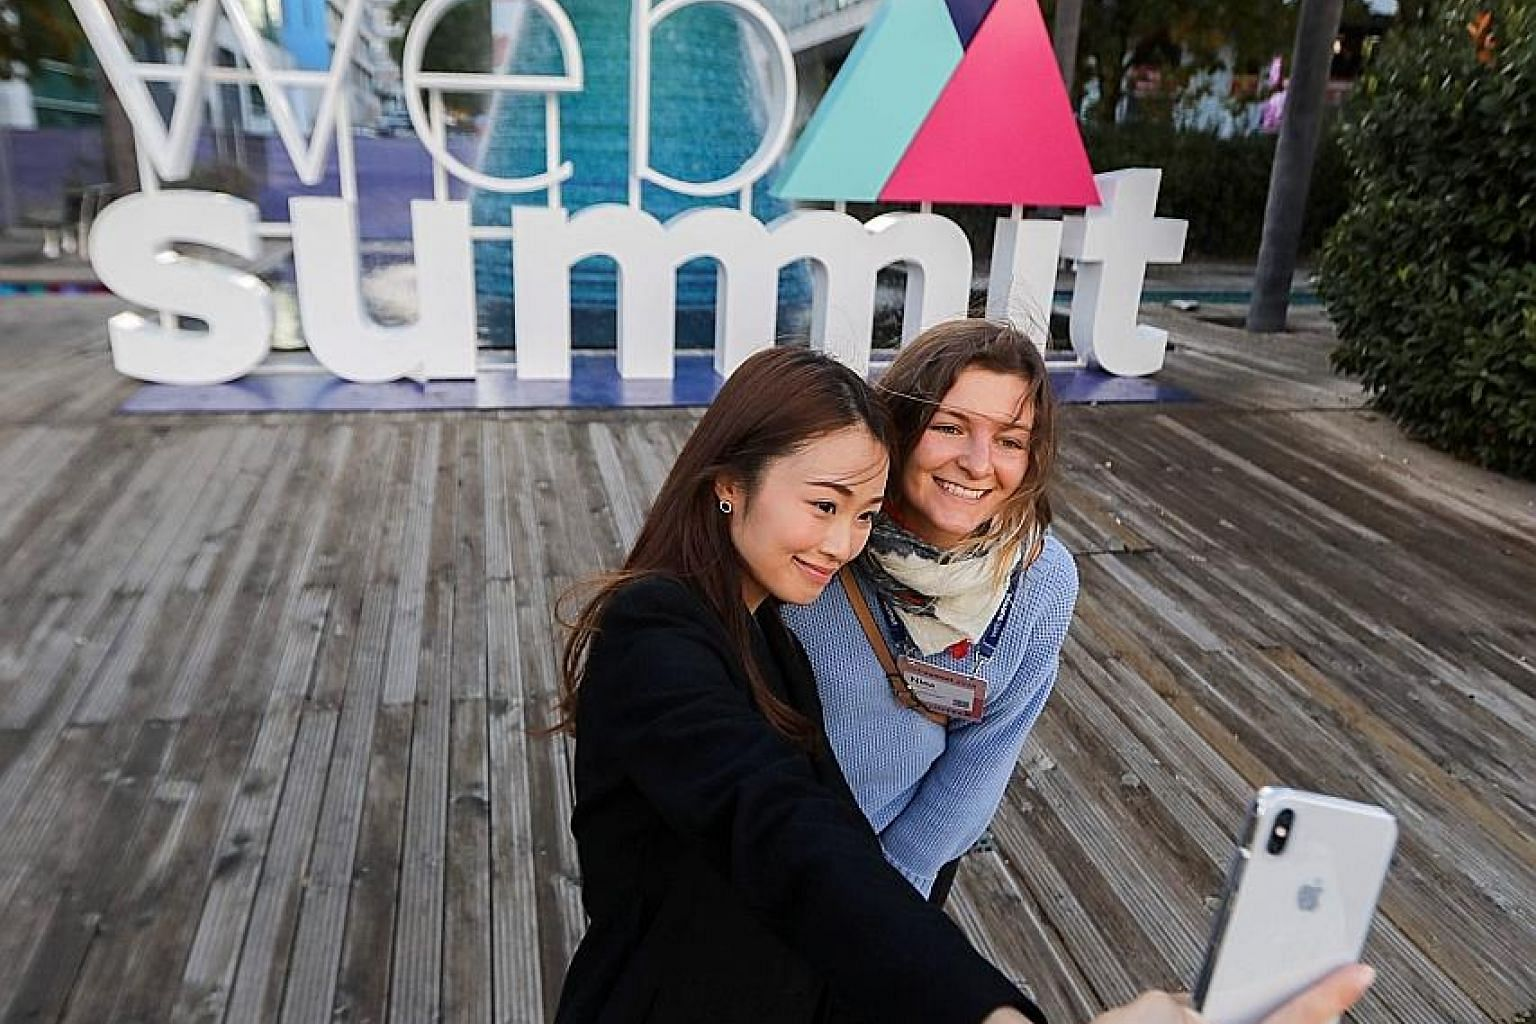 While attendees revel in the buzz surrounding Europe's largest technology event, Web Summit (above) in Lisbon, British computer scientist Tim Berners-Lee is focused on getting a bug out of the system. The inventor of the World Wide Web in 1989 has ca